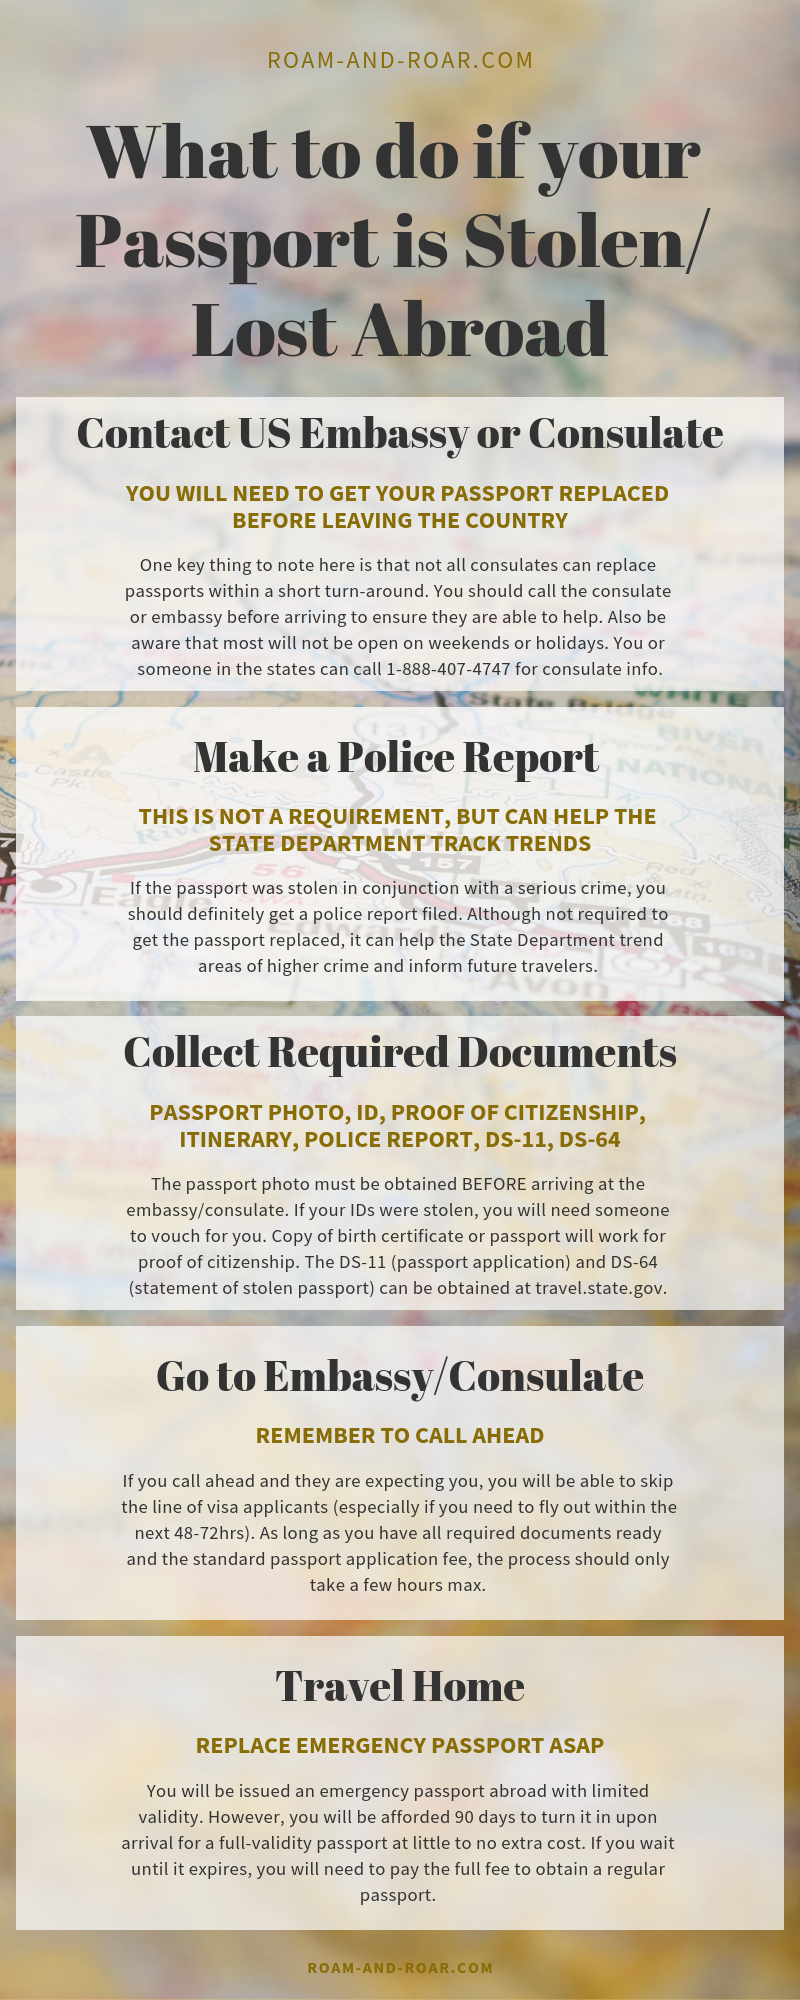 What To Do If Your Passport Is Lost Or Stolen Abroad L Roam Roar Lost Passport Emergency Passport Getting A Passport